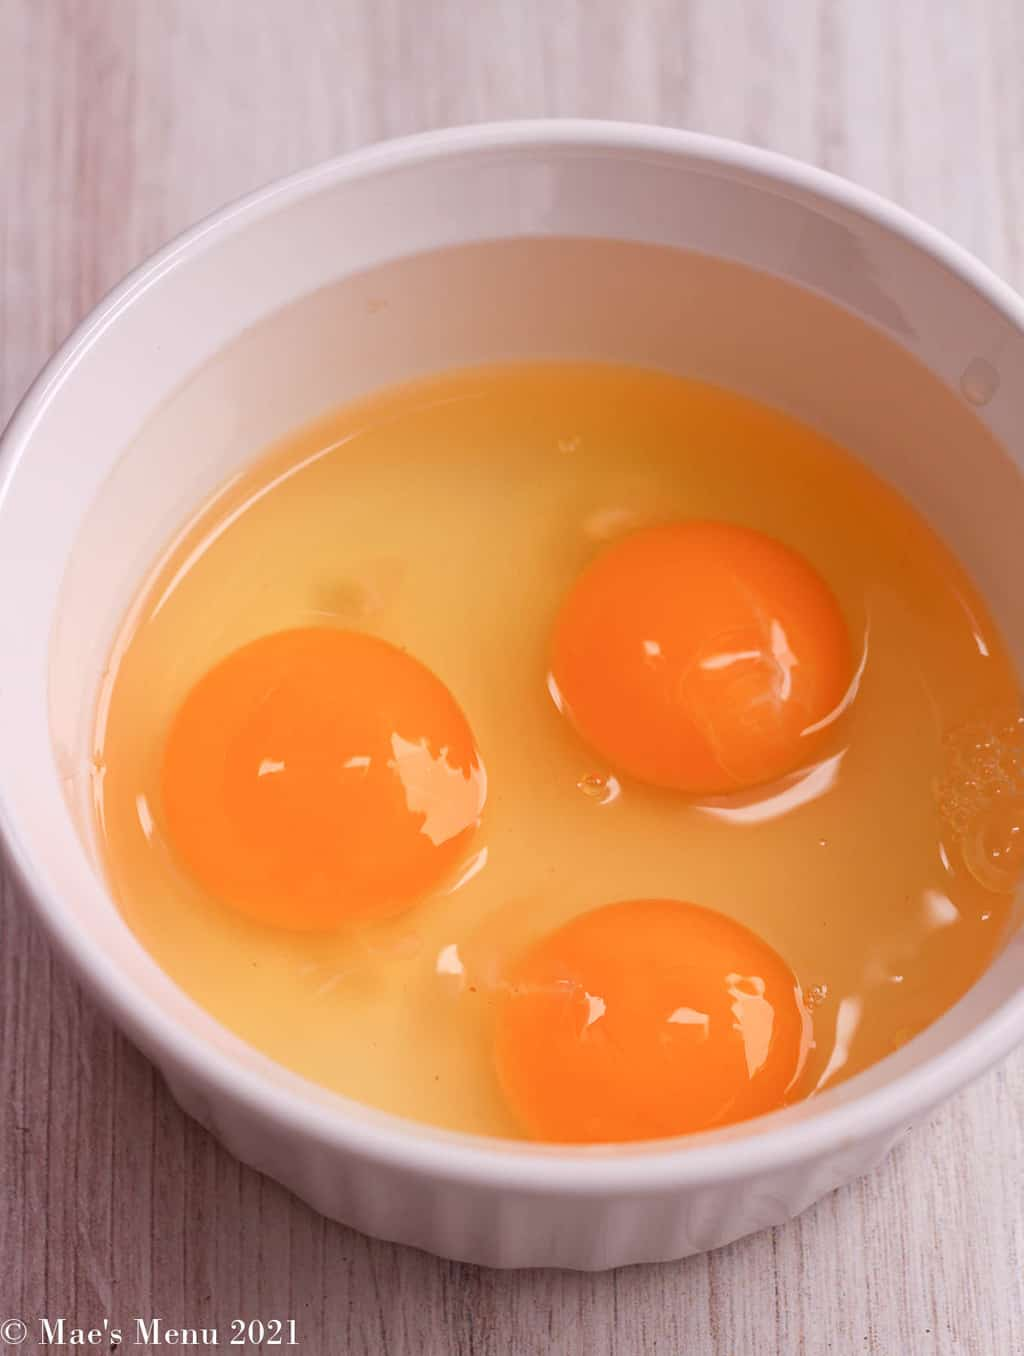 Three large cracked eggs in a white bowl